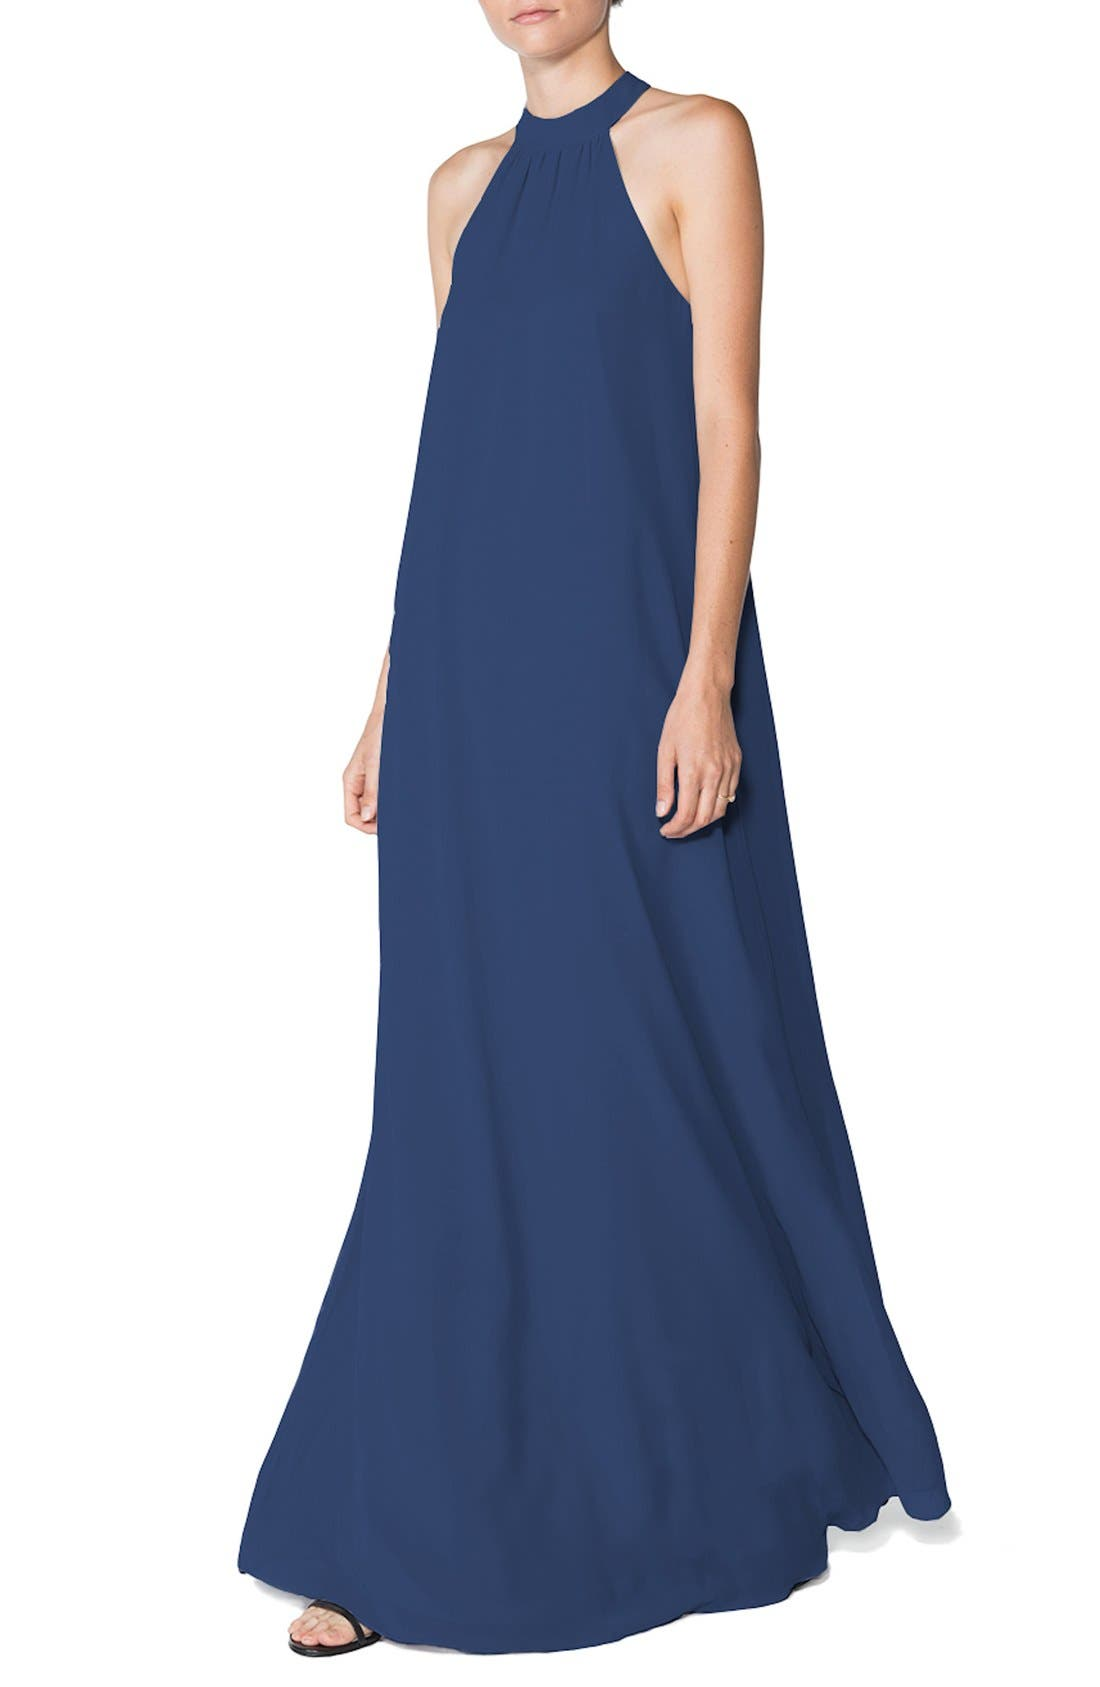 Ceremony by Joanna August 'Elena' Halter Style Chiffon A-Line Gown